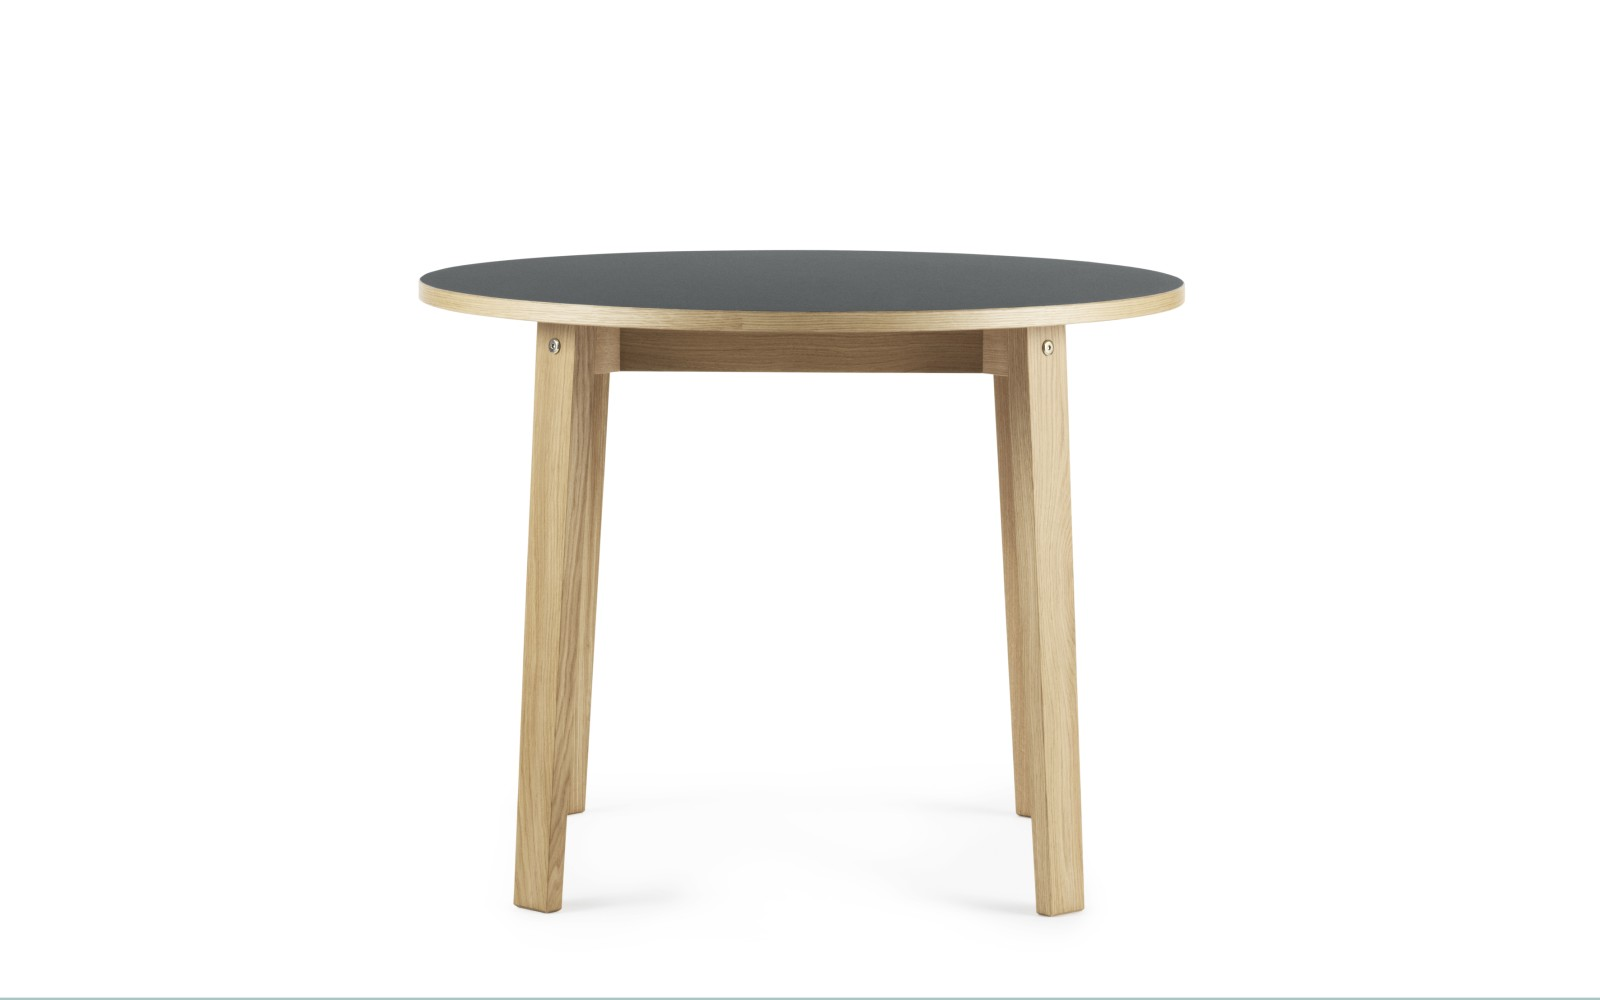 Slice Linoleum Round Dining Table Grey, 0 95 cm